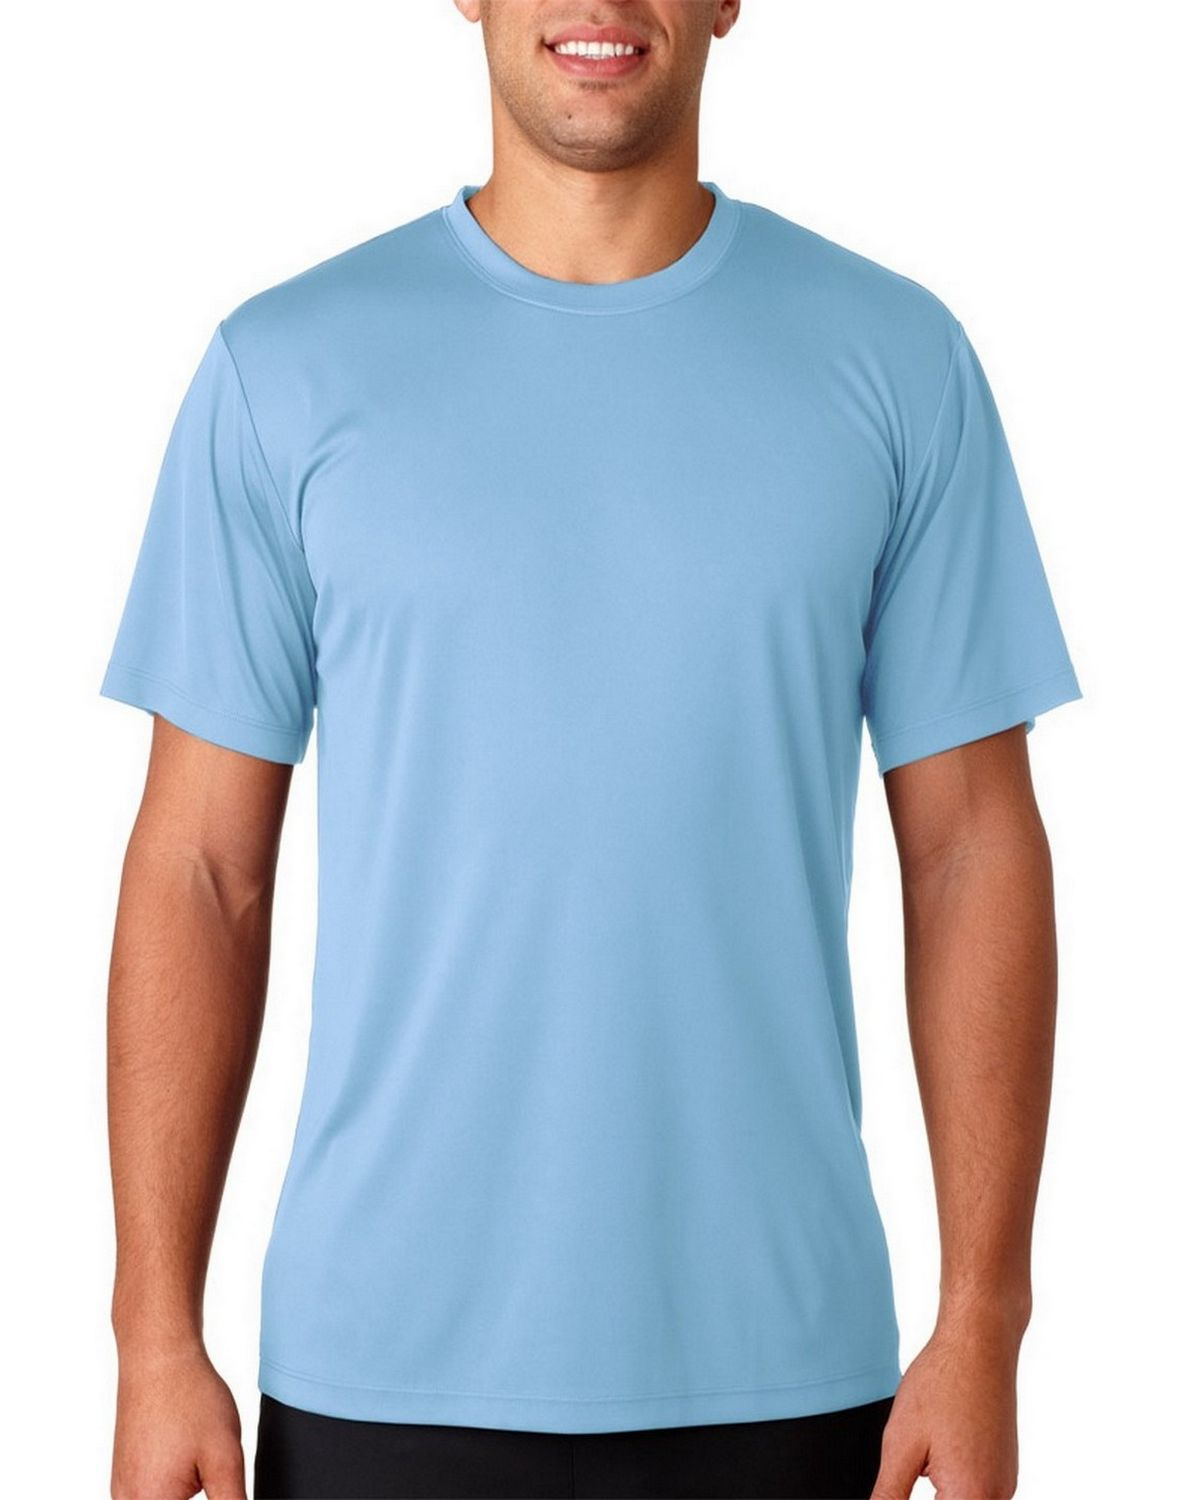 Hanes H4820 Tagless Performance Tee - Light Blue - XS H4820